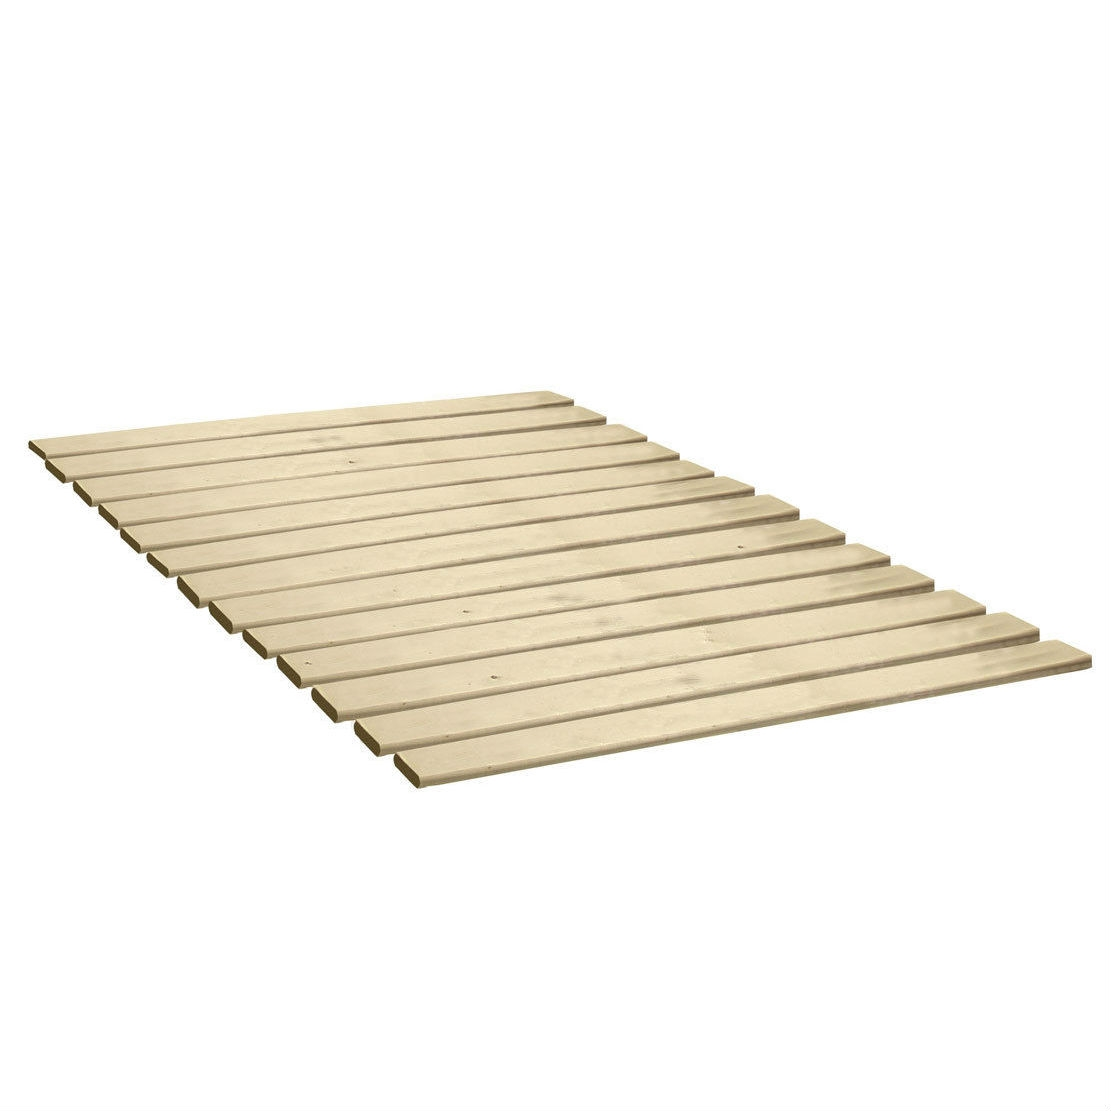 Twin Size Heavy Duty Wooden Bed Slats Made In Usa